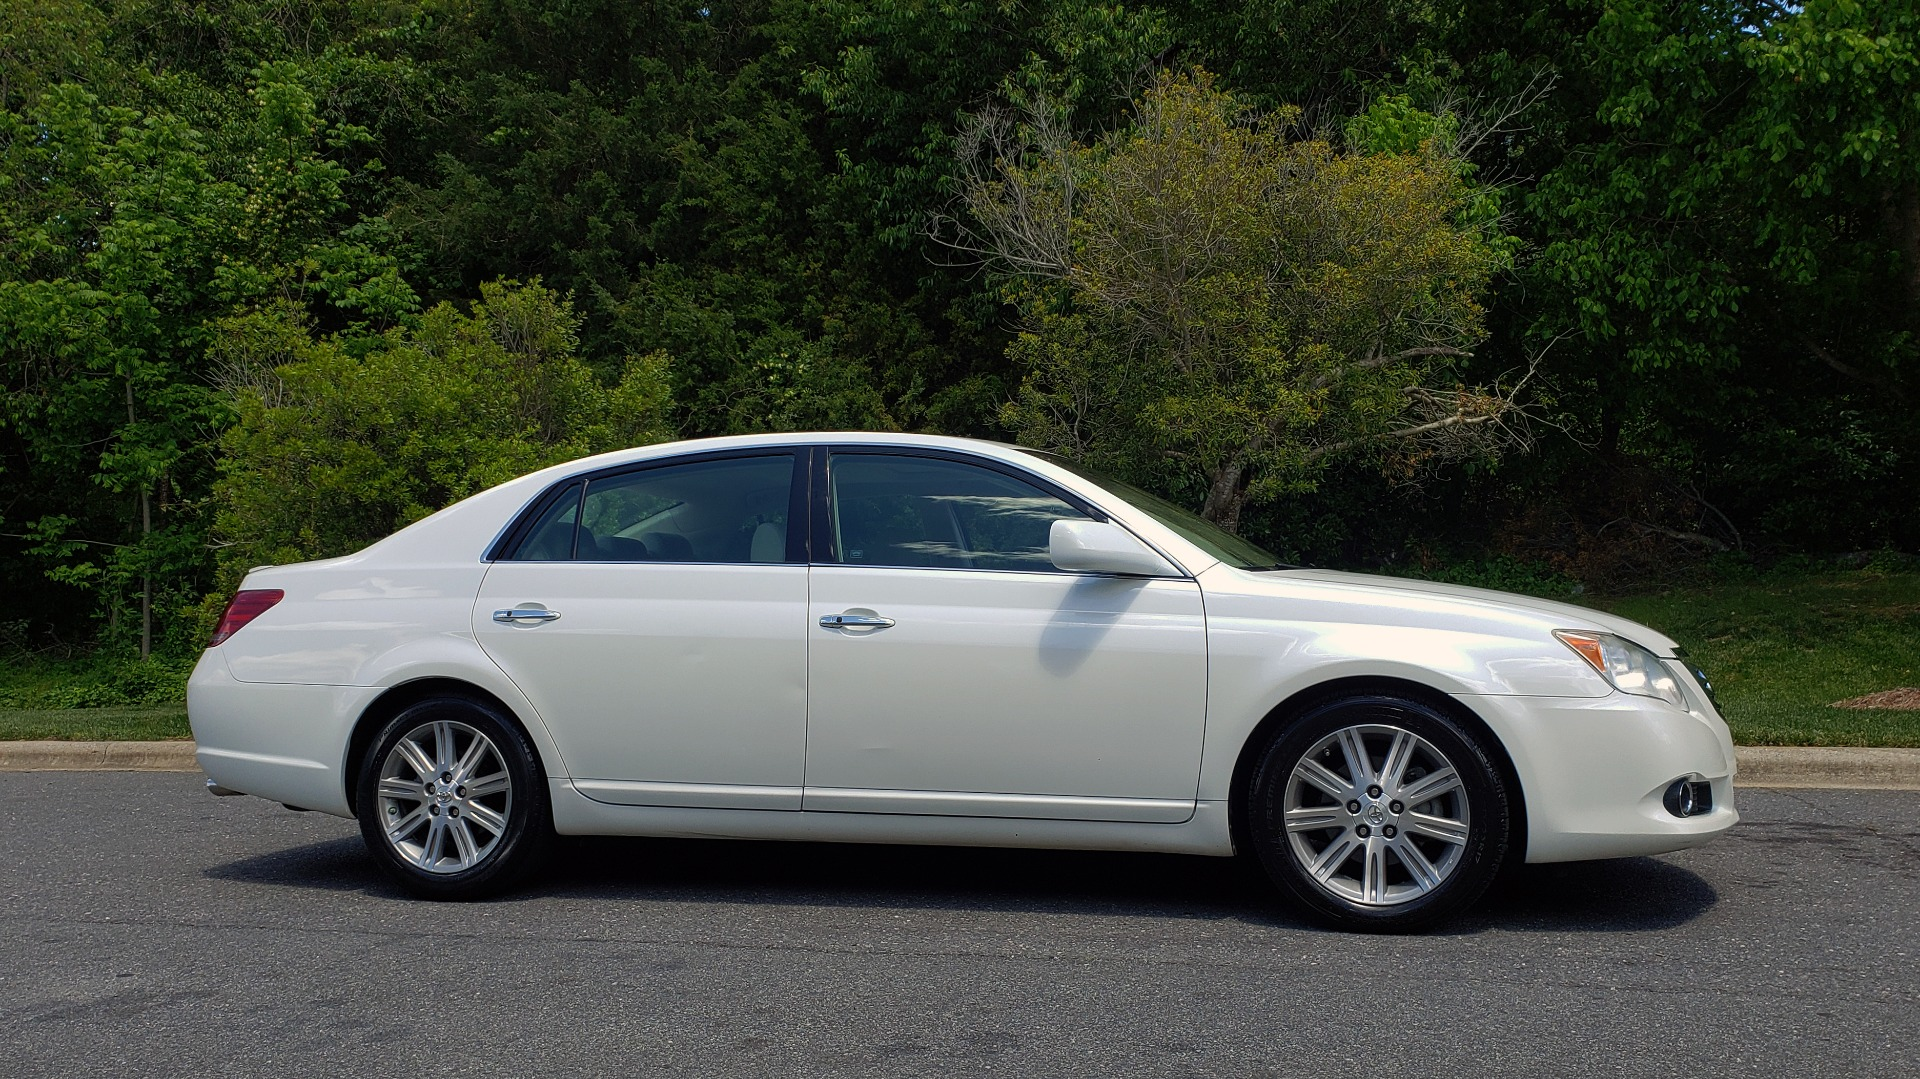 Used 2008 Toyota AVALON LIMITED V6 / FWD / SUNROOF / DYN RADAR CRUISE / BRAKE ASST for sale Sold at Formula Imports in Charlotte NC 28227 5